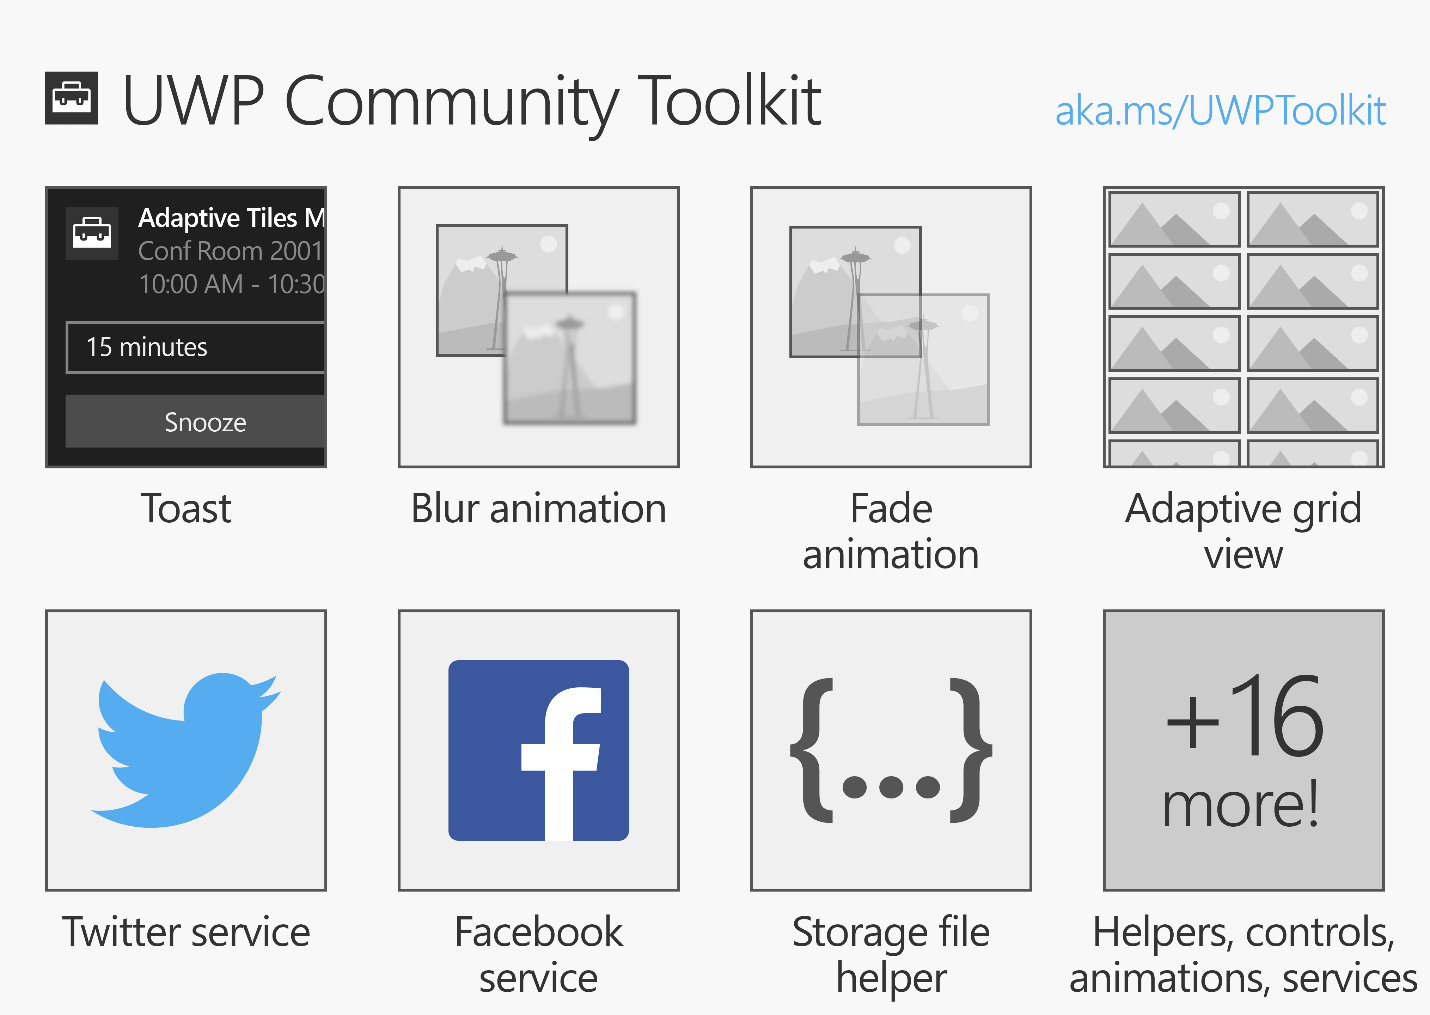 Microsoft just released UWP Community Toolkit - Collection of helper functions, custom controls, and app services